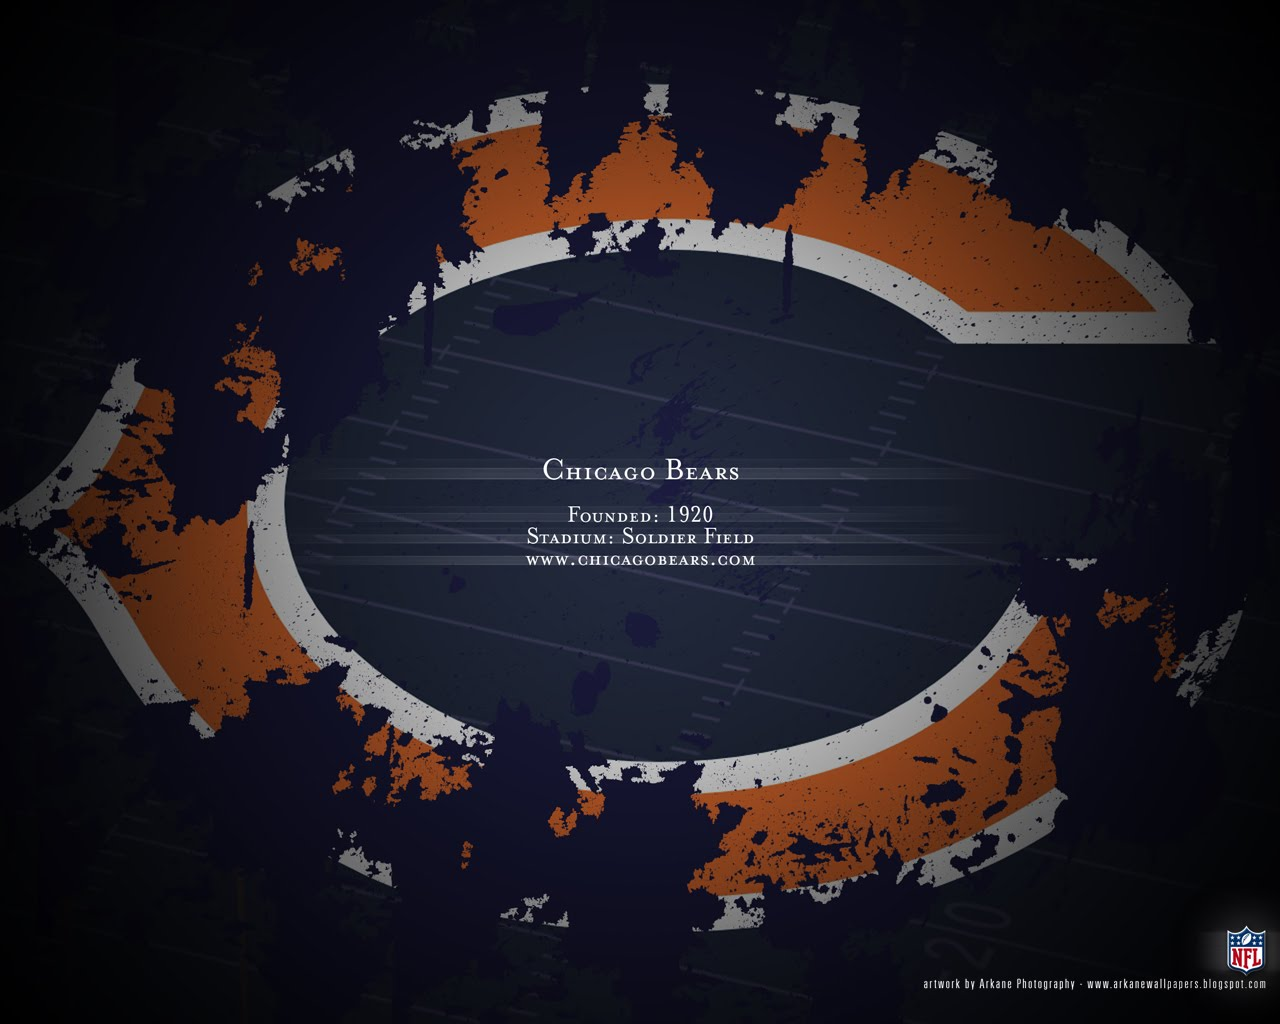 Chicago Bears wallpaper desktop wallpapers Chicago Bears wallpapers 1280x1024